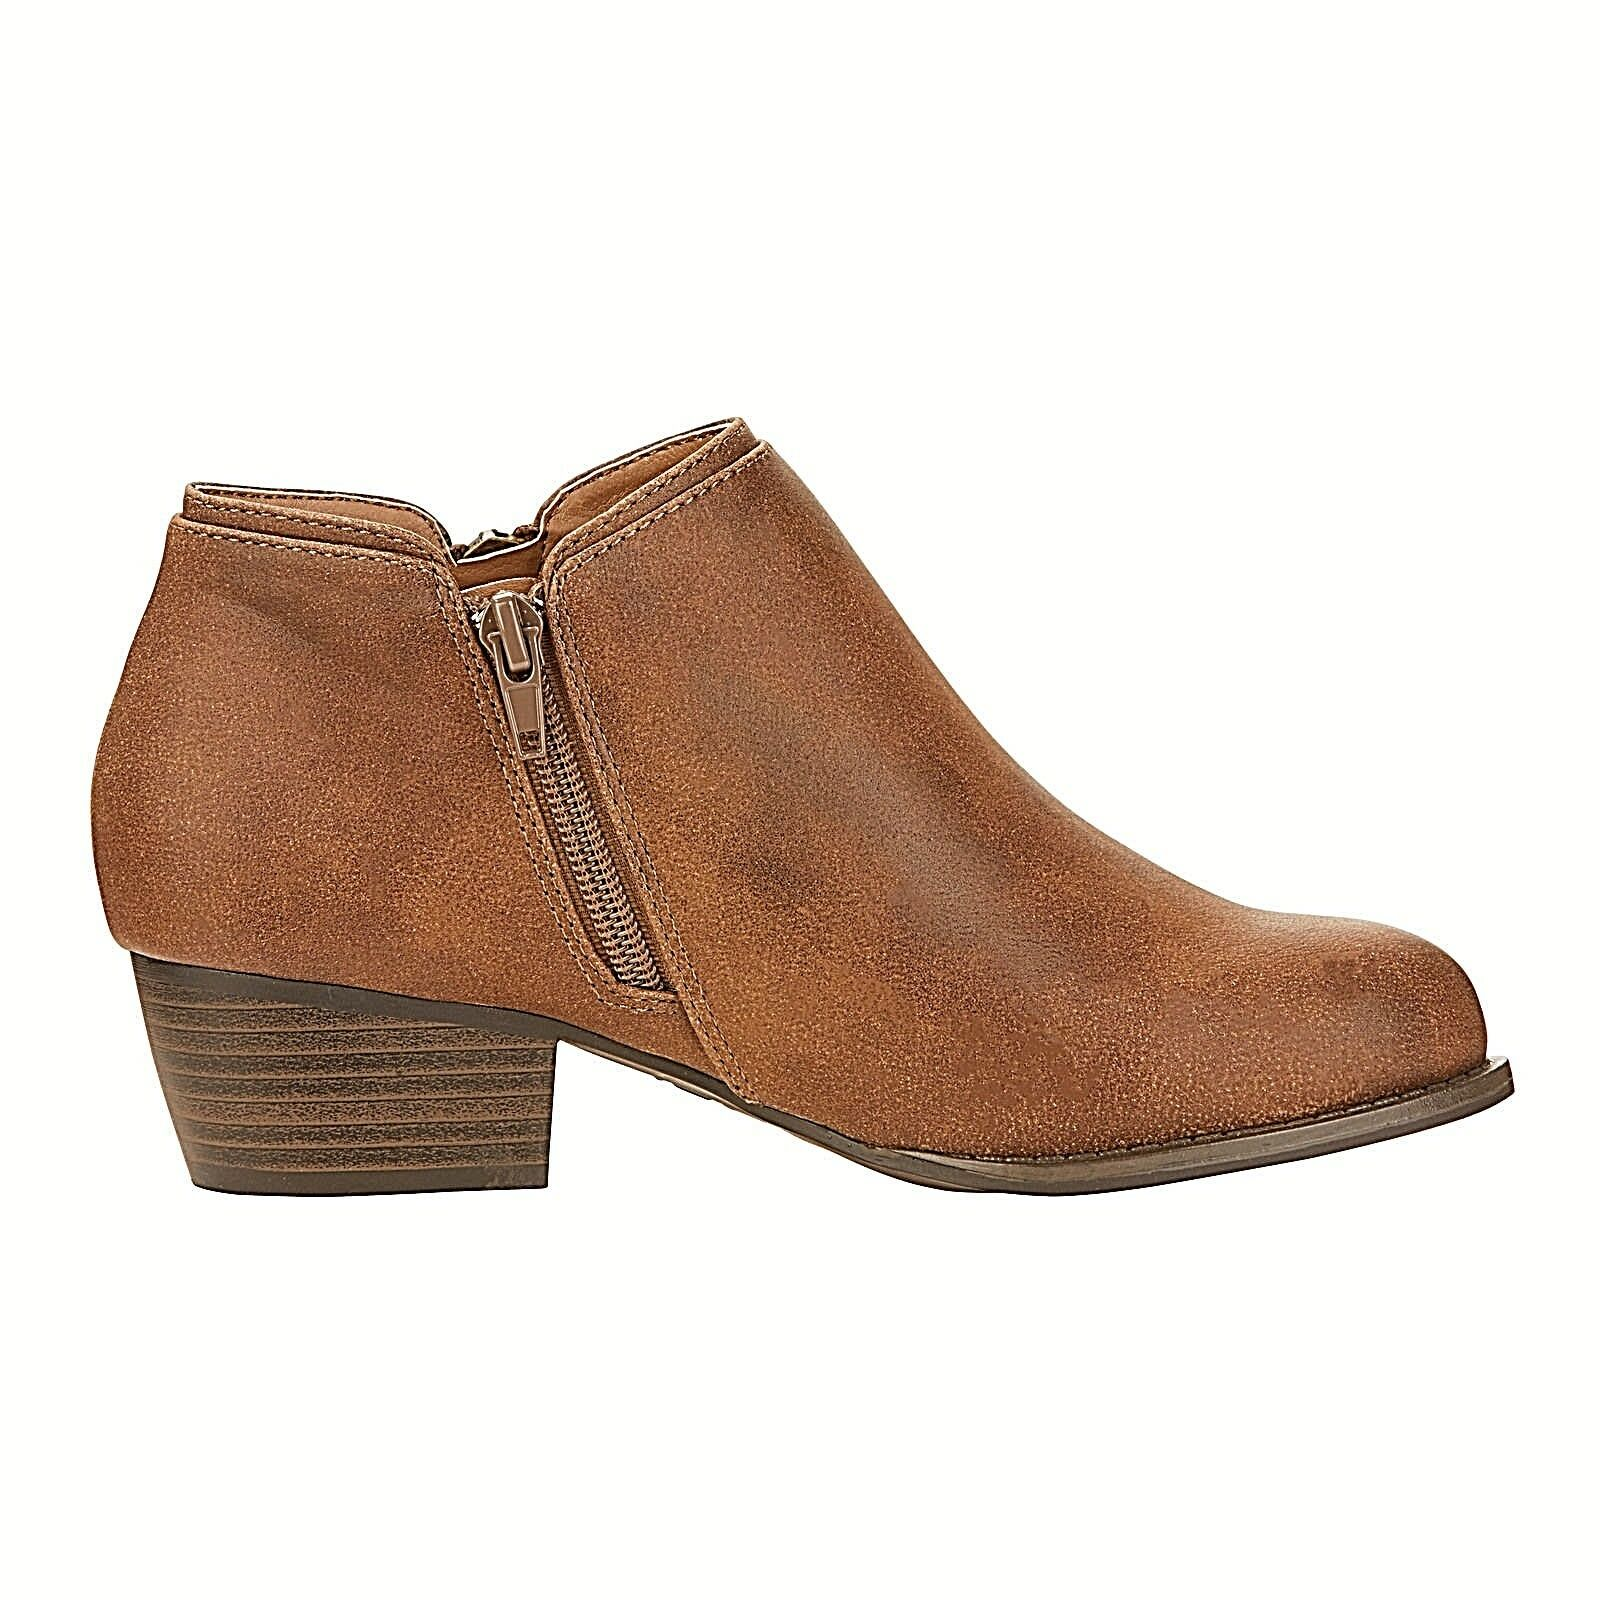 JBU Triumph Zippered Ankle Boots Brown Size 11 M FREE 2-3 Day Shipping